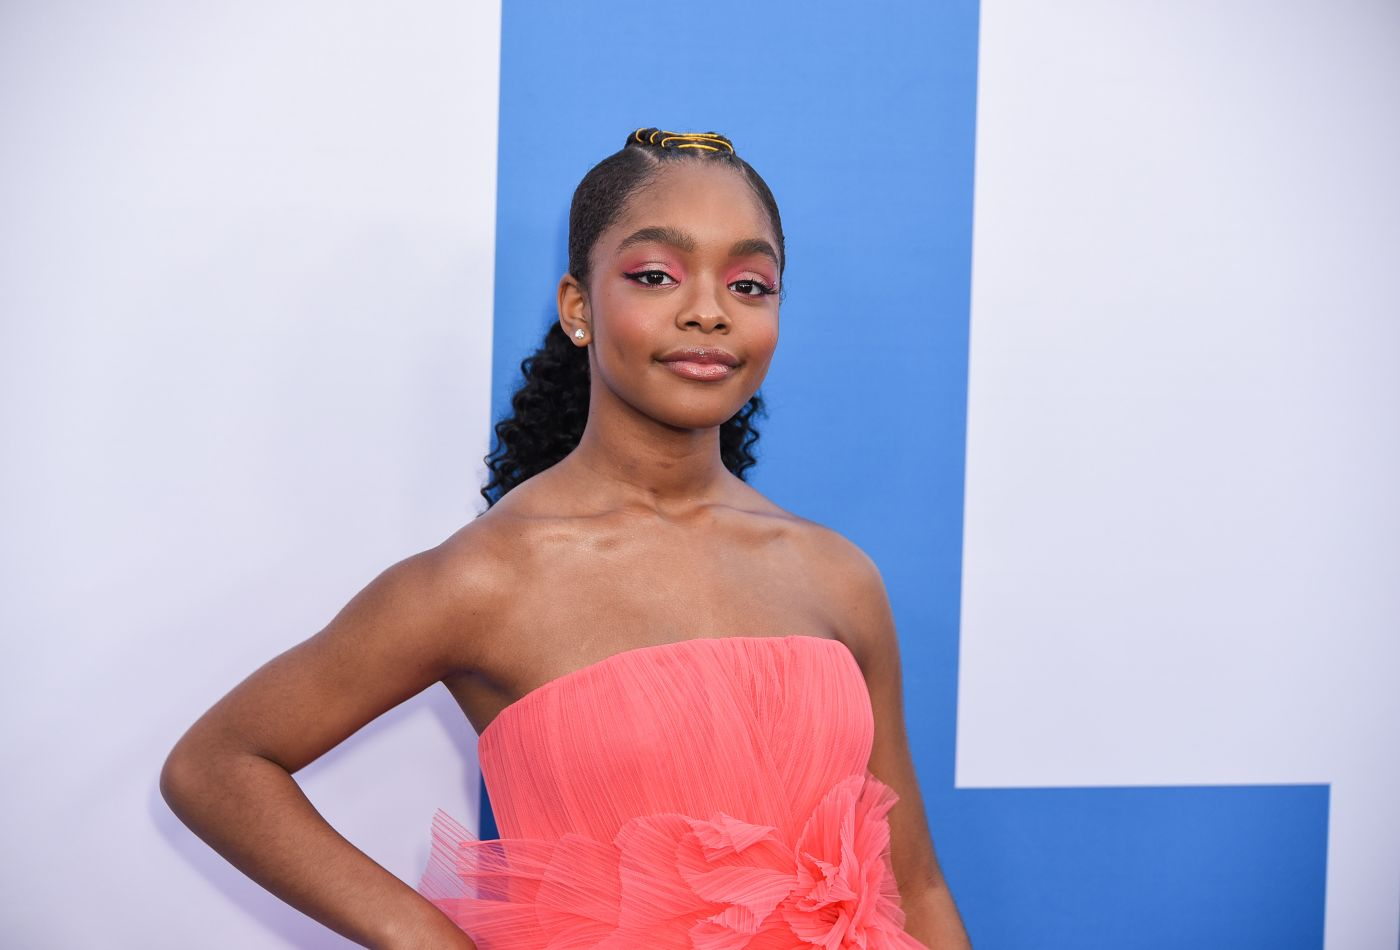 Marsai Martin is the youngest person to executive produce a studio 1400x950